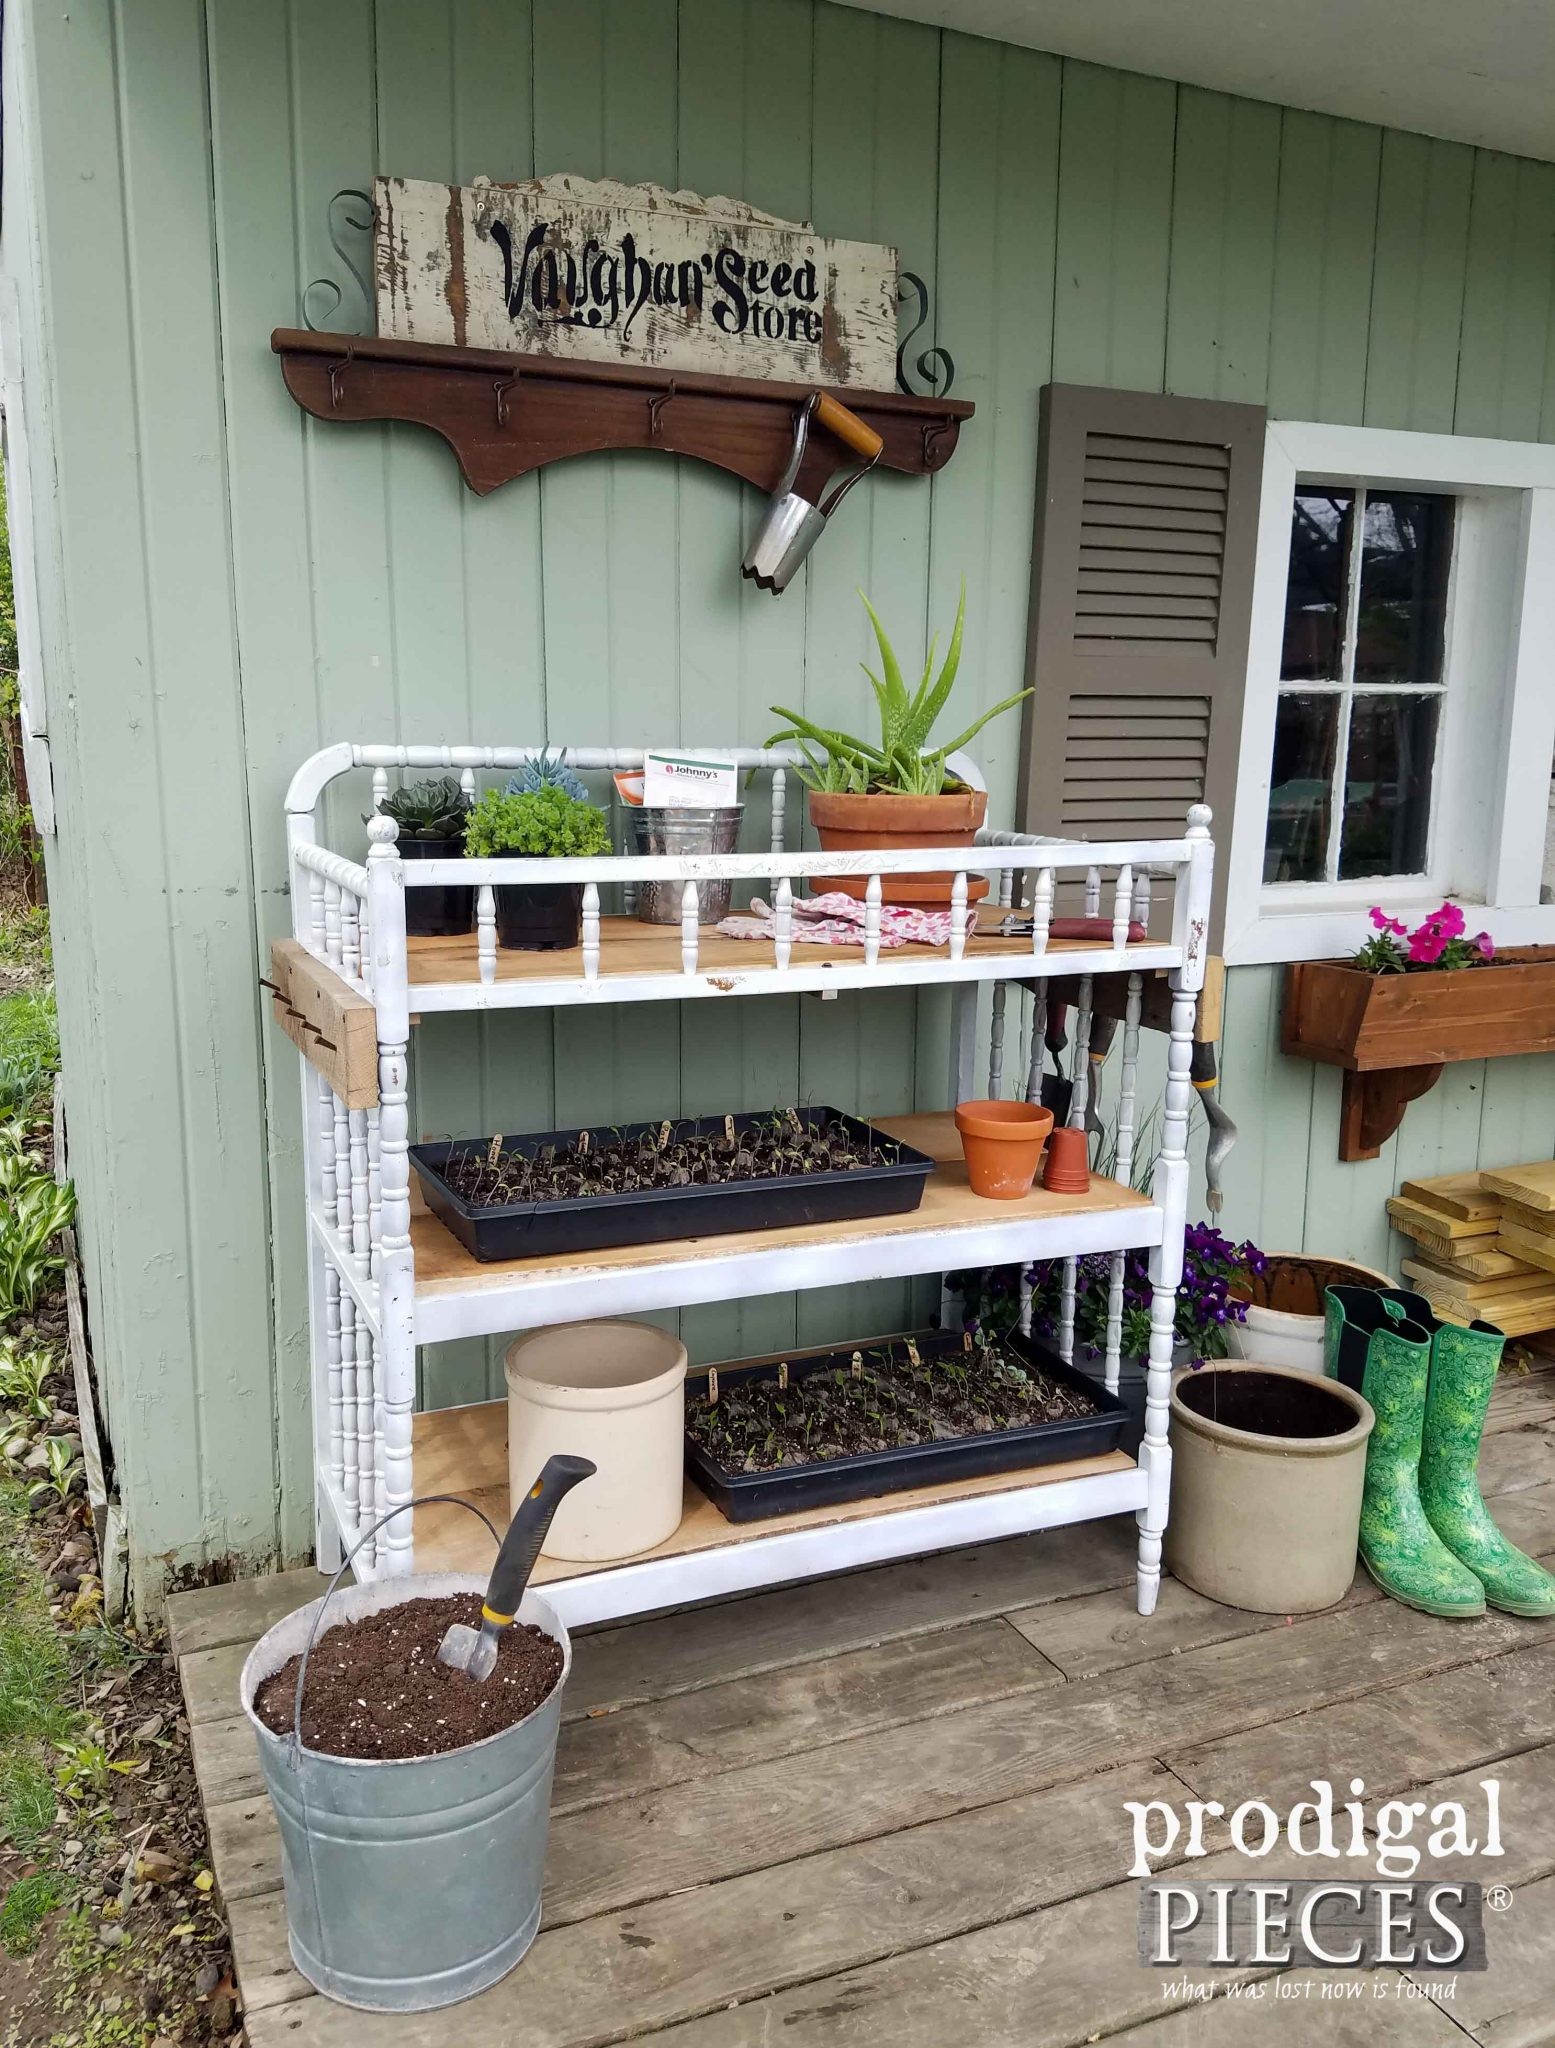 Potting Shed with Repurposed Changing Table Potting Bench by Prodigal Pieces | prodigalpieces.com